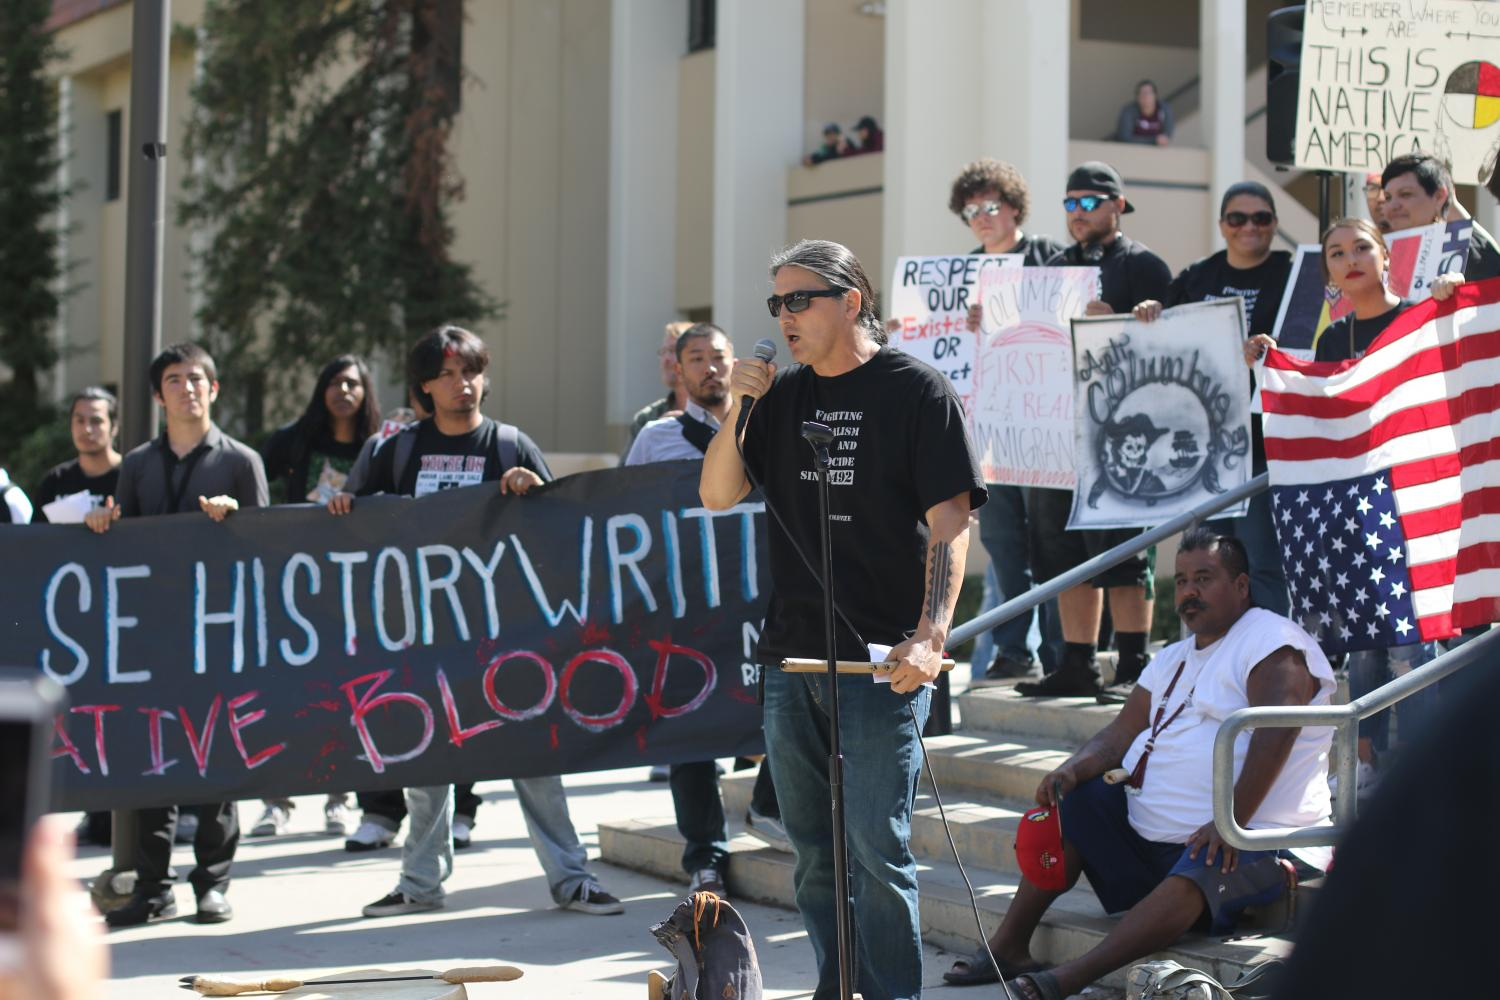 American-Indian studies instructor Bernard Navarro speaks at FCC's main fountain stage about the Native American community's thoughts about Columbus Day on Monday, Oct. 9, 2017.